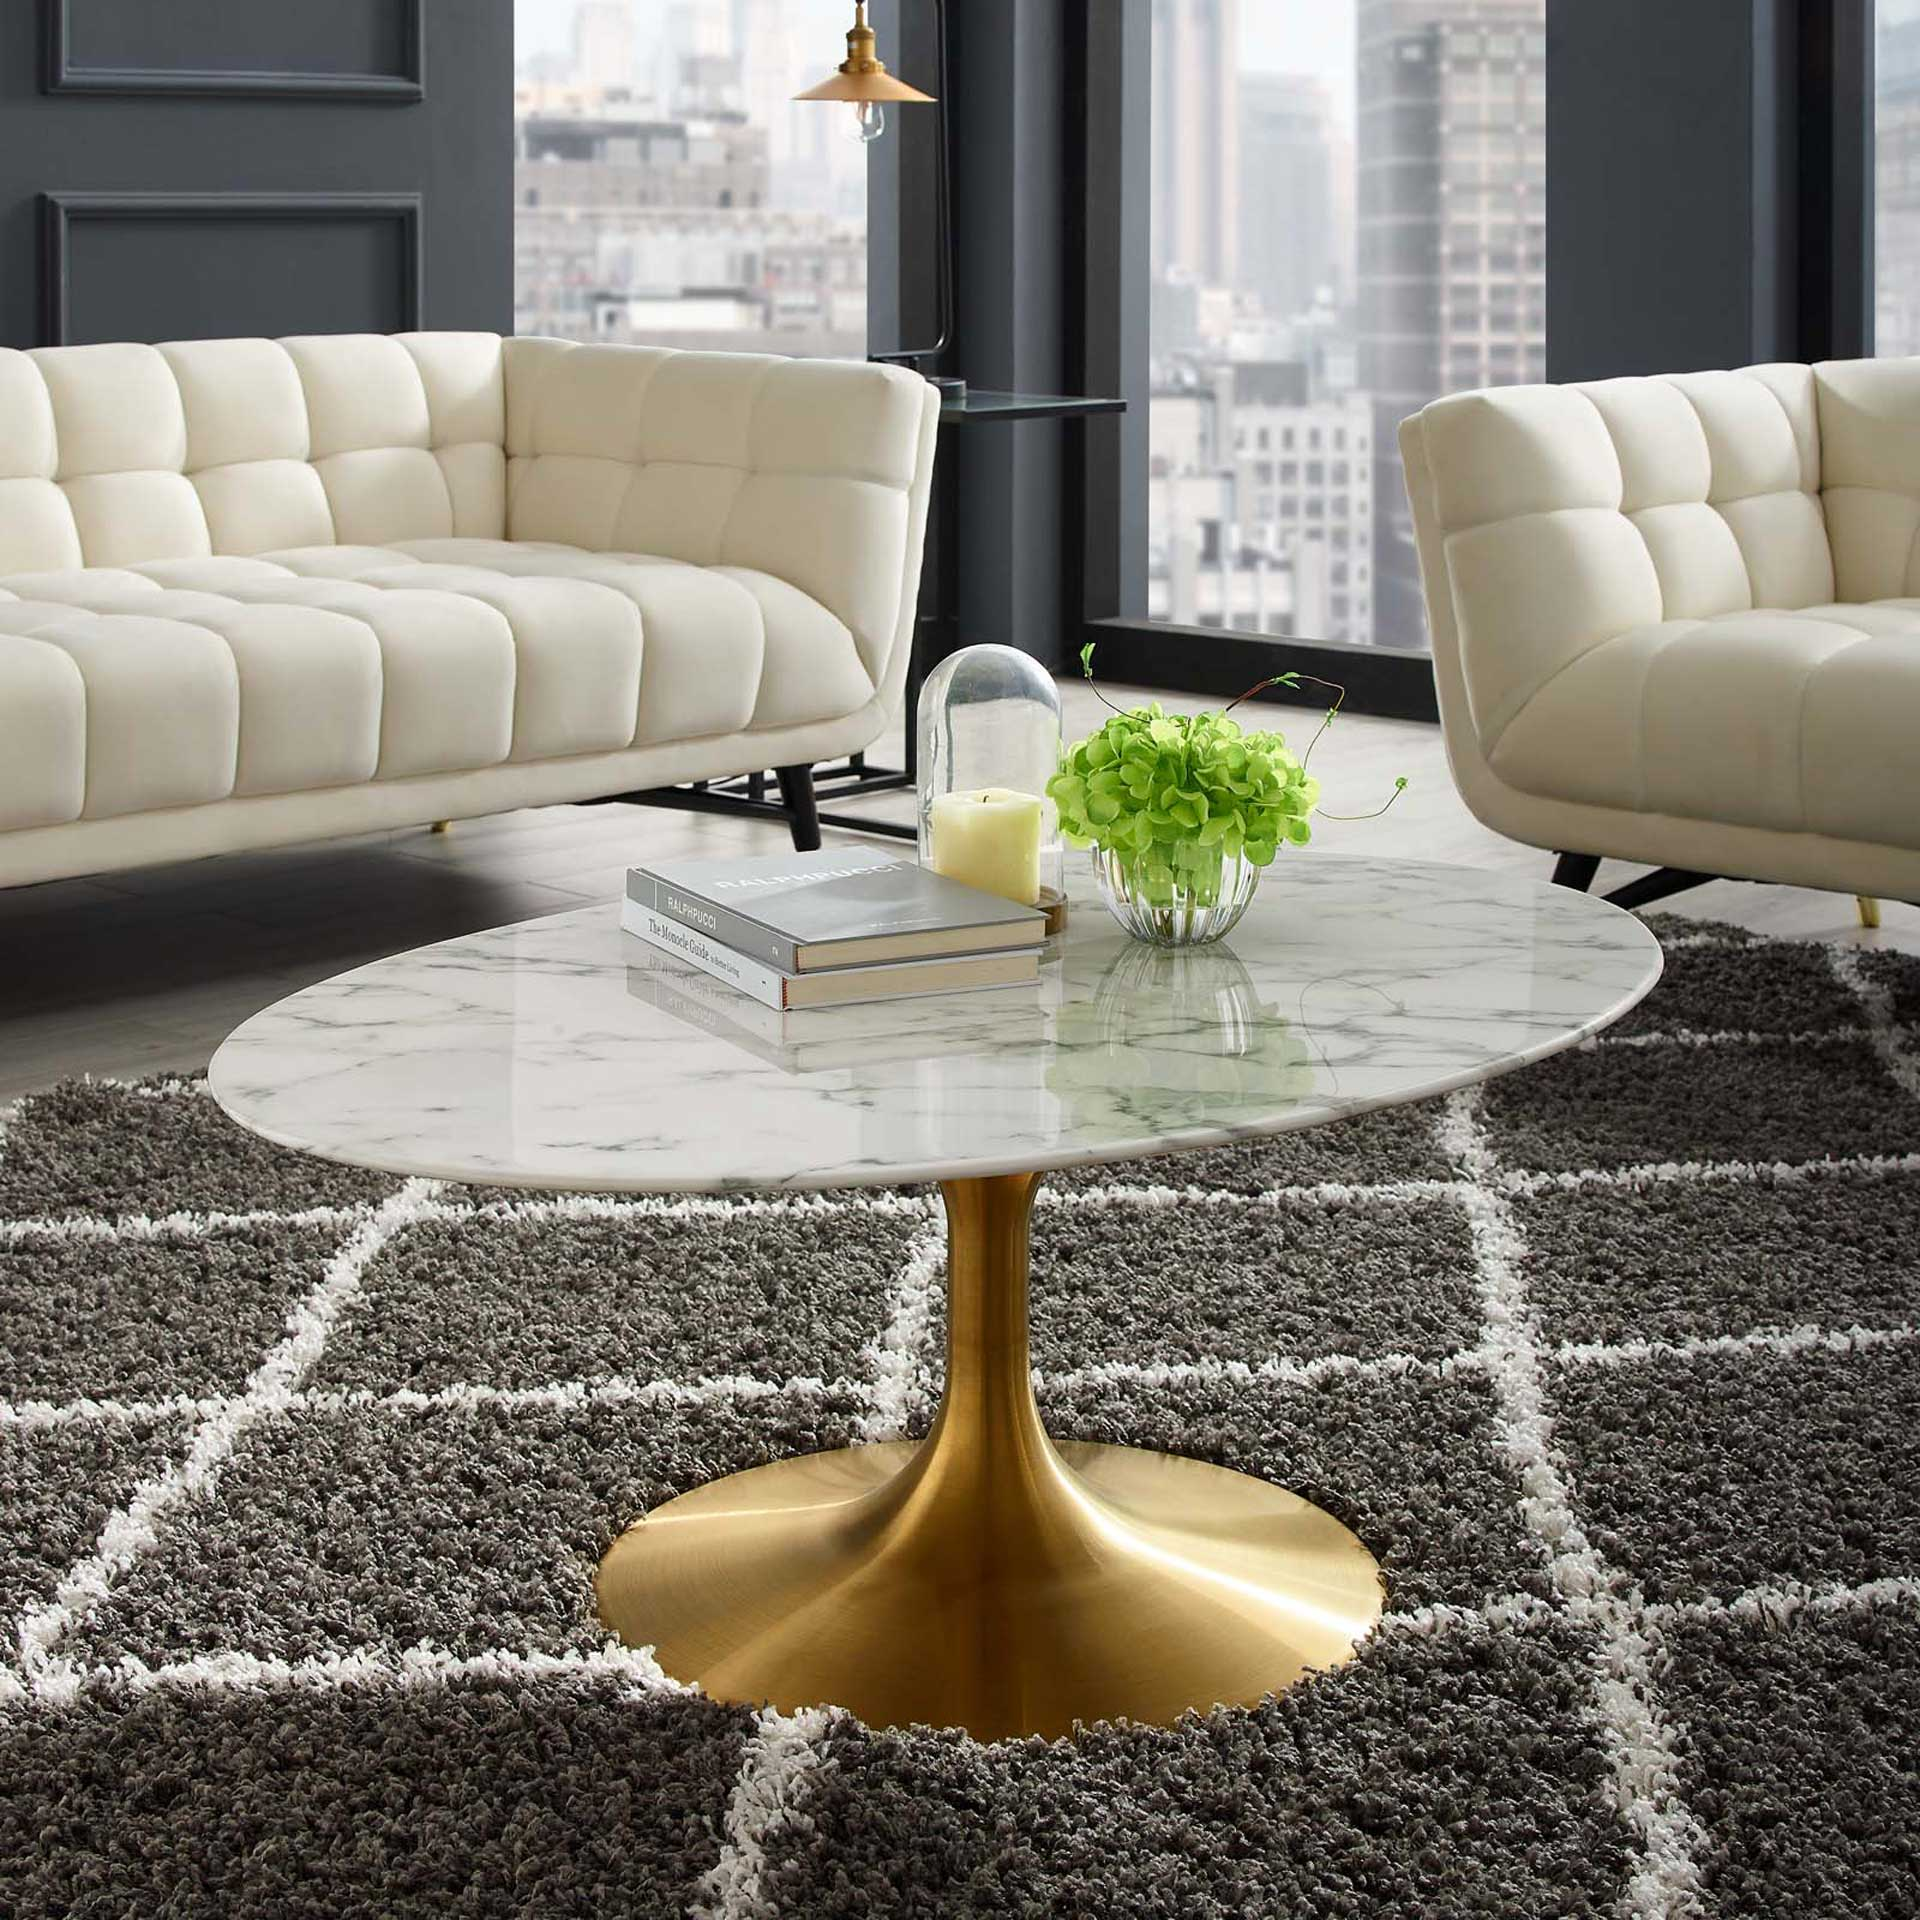 Lore Oval Coffee Table Gold/White Marble